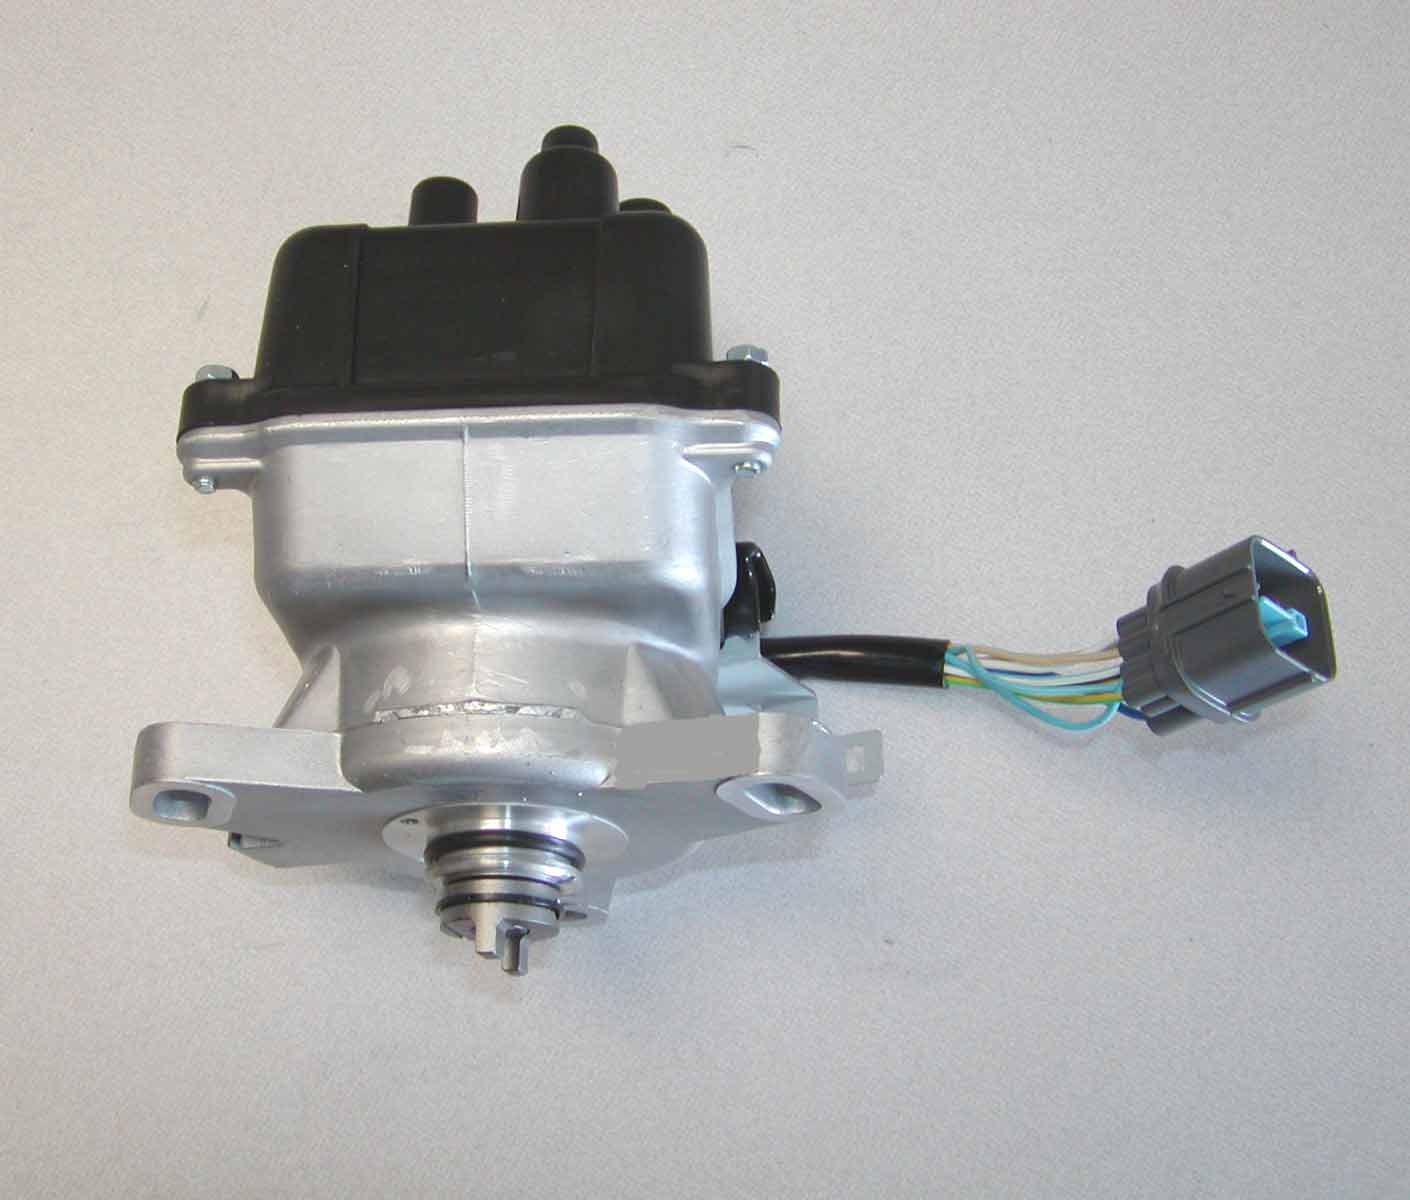 1985 1989 Toyota Mr2 Corolla Fx16 16 4agelc Brand New Distributor 1986 Wiring Click Picture To Enlarge